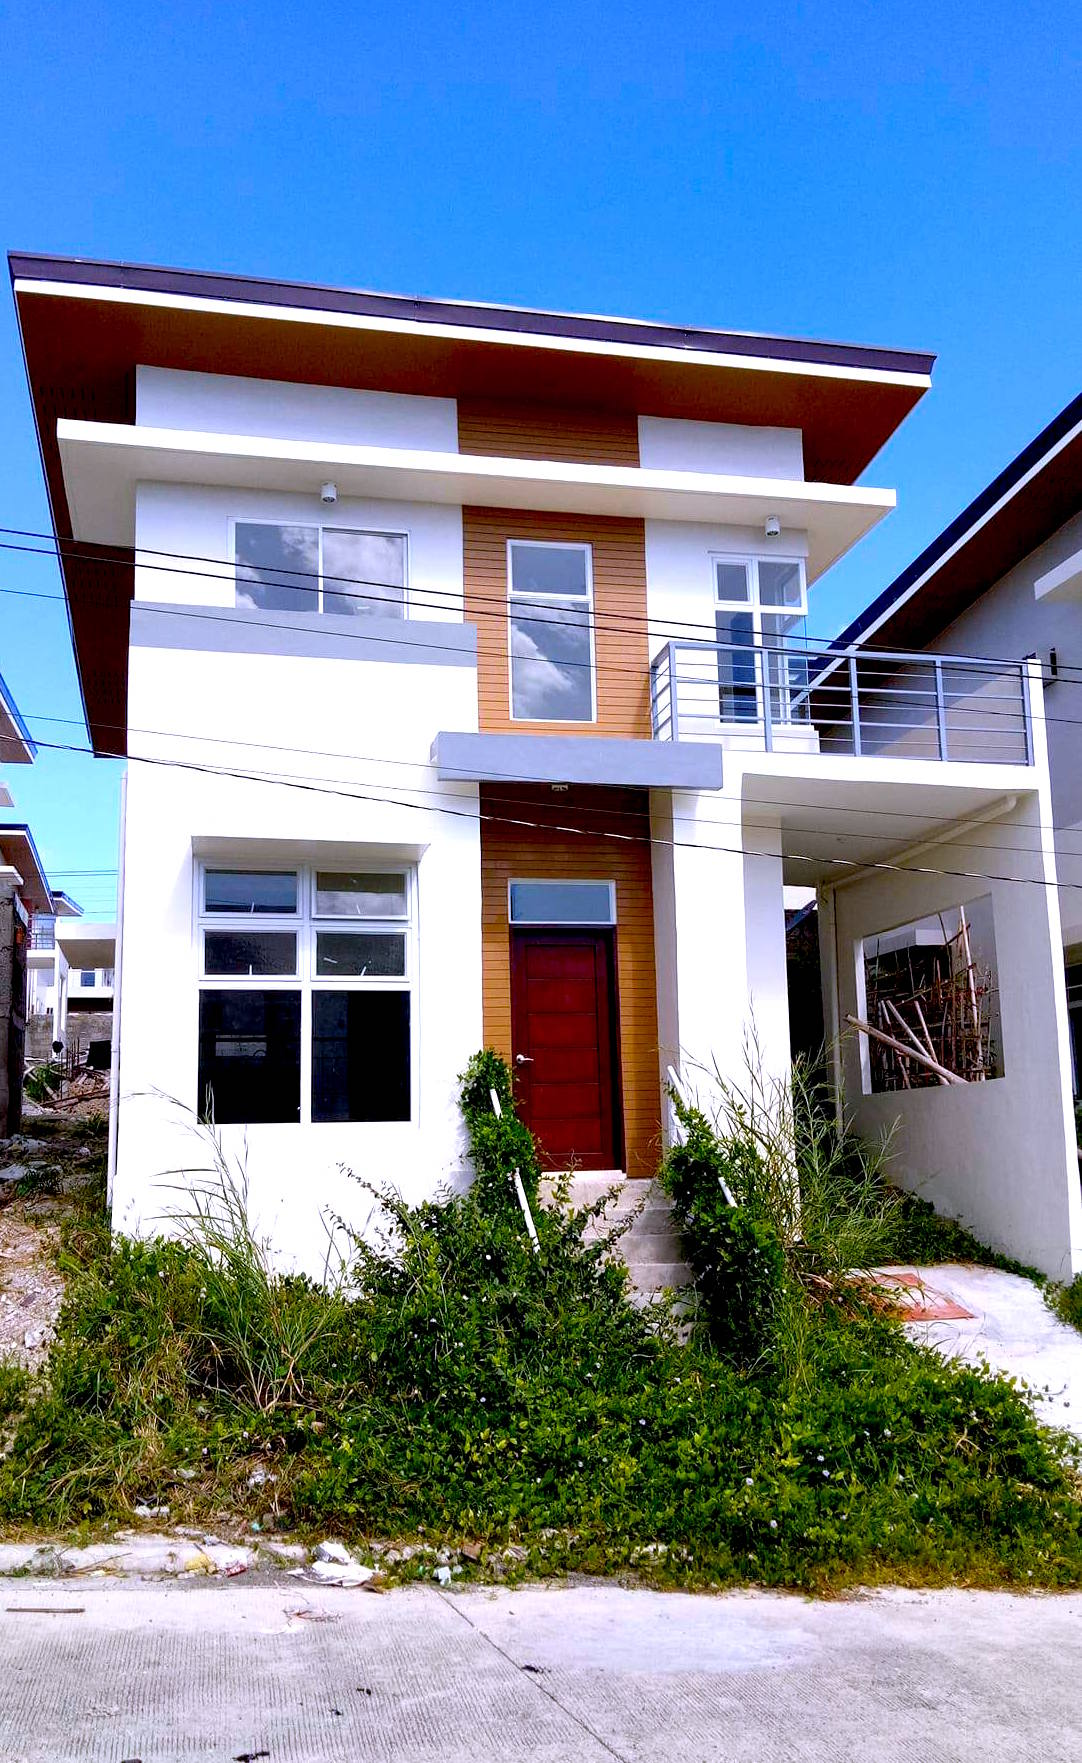 FOR SALE BRANDNEW DETACHED HOUSE AT VELMIRO HEIGHTS SUBD